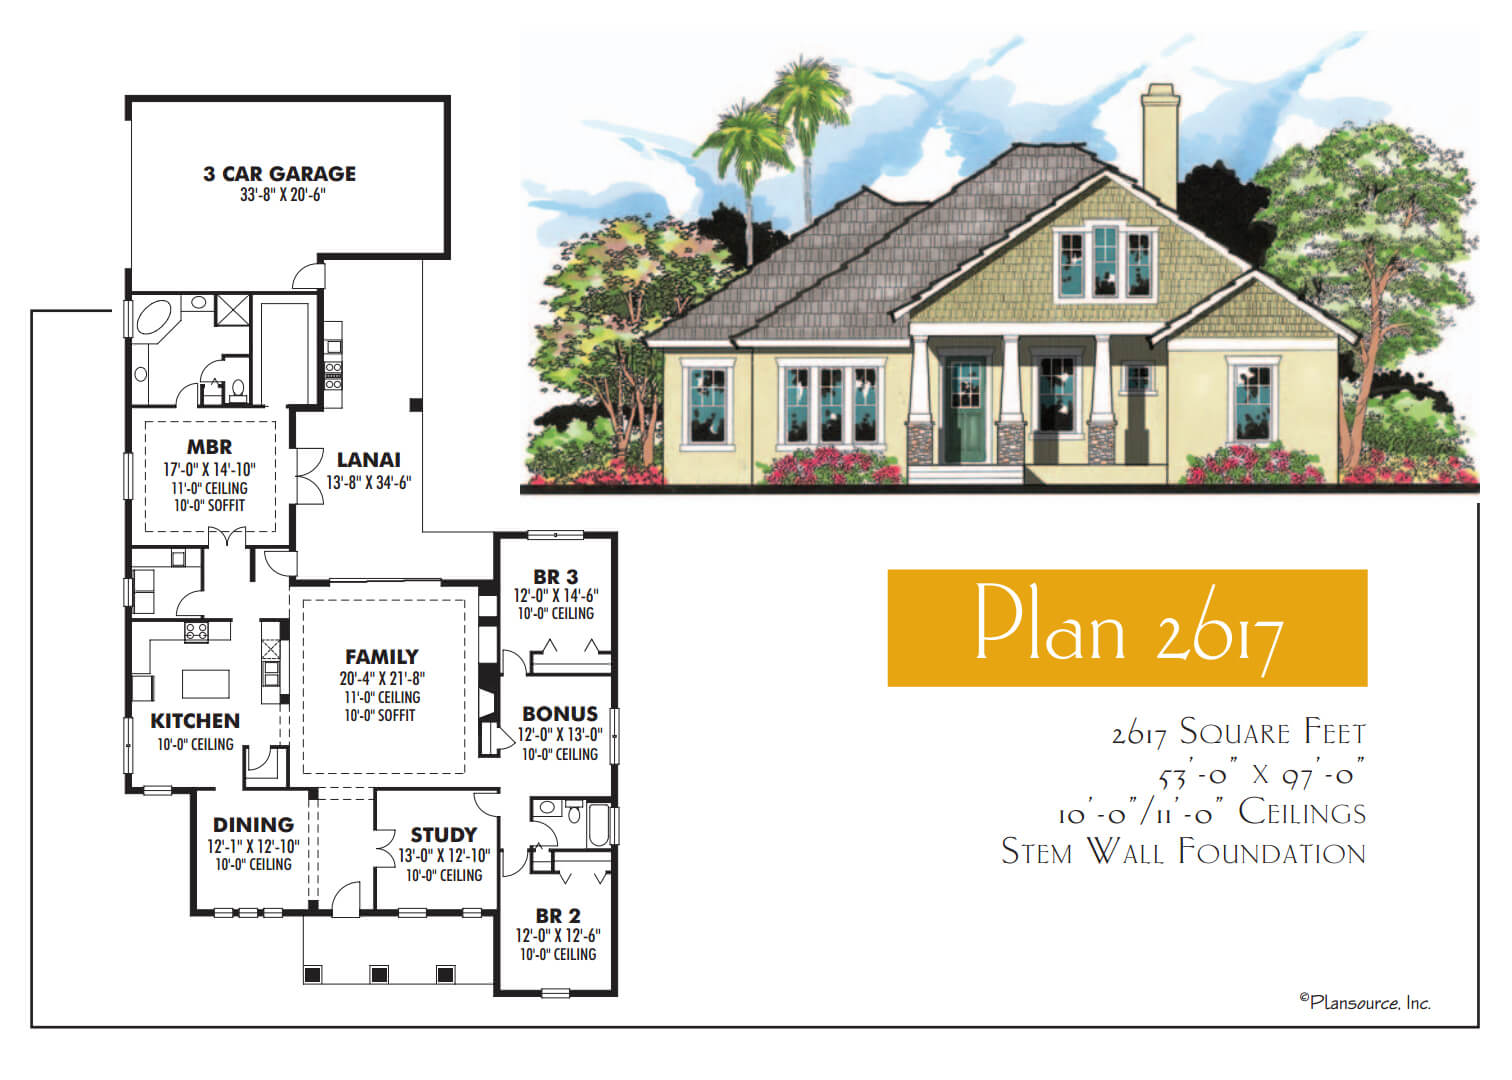 Floor Plans,2,501 SQ FT TO 3,000 SQ FT,1062